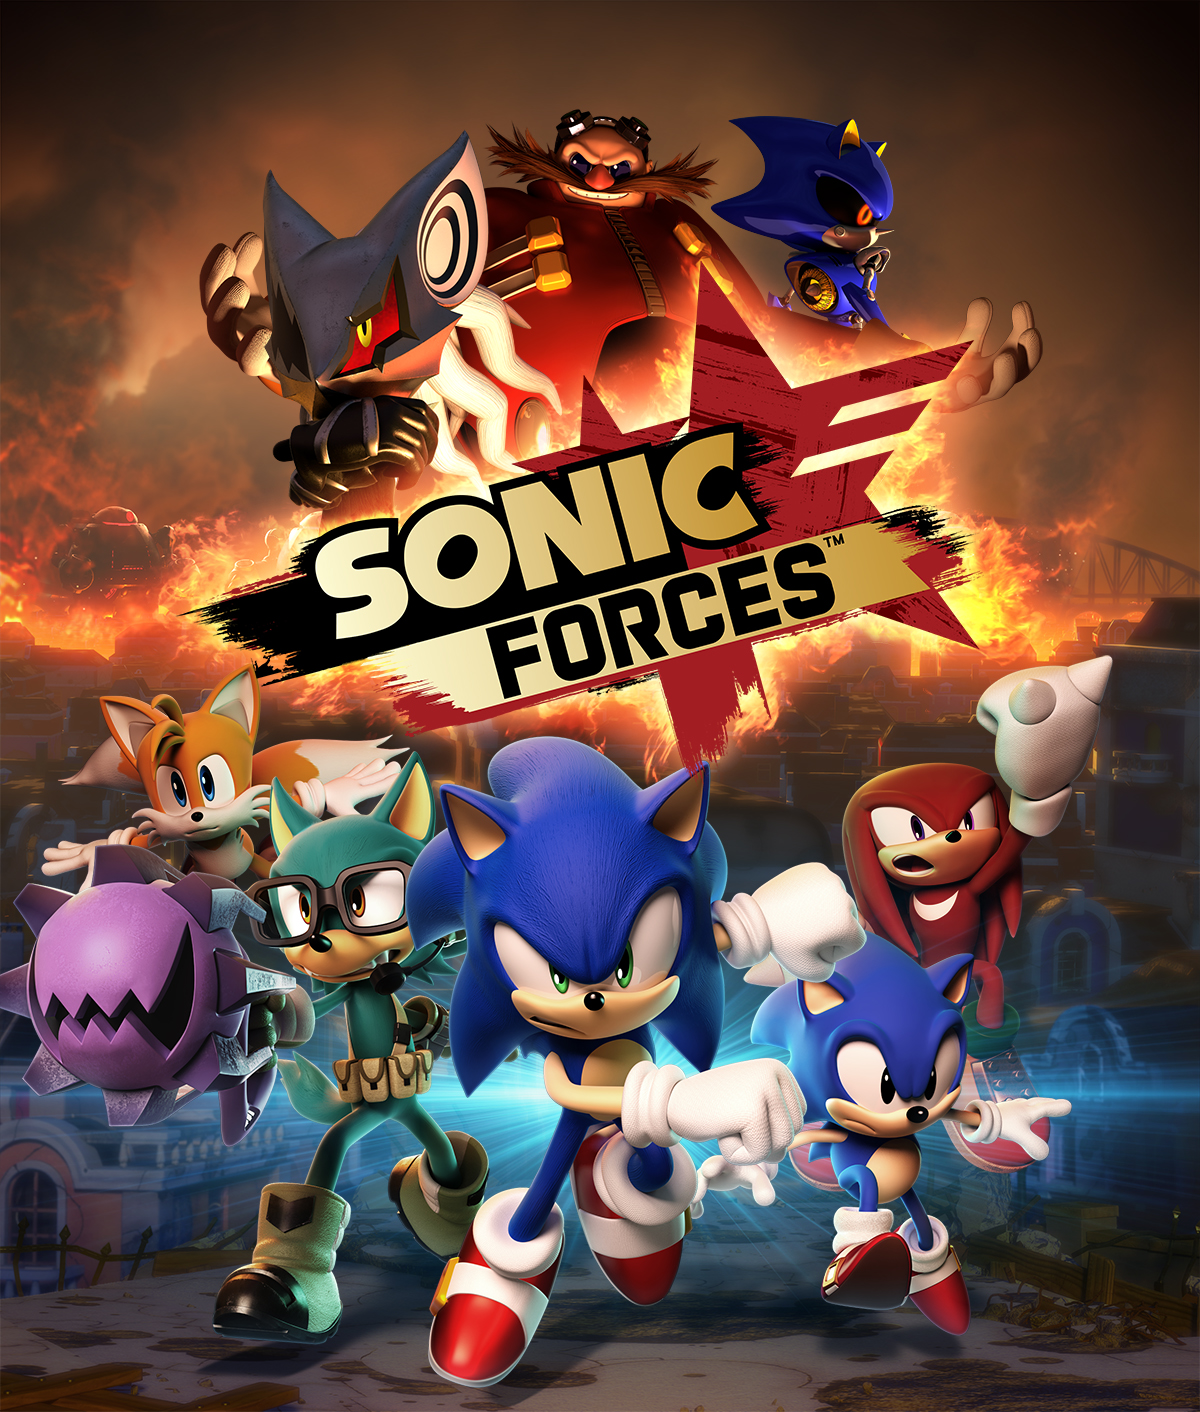 Sonic forces.jpg